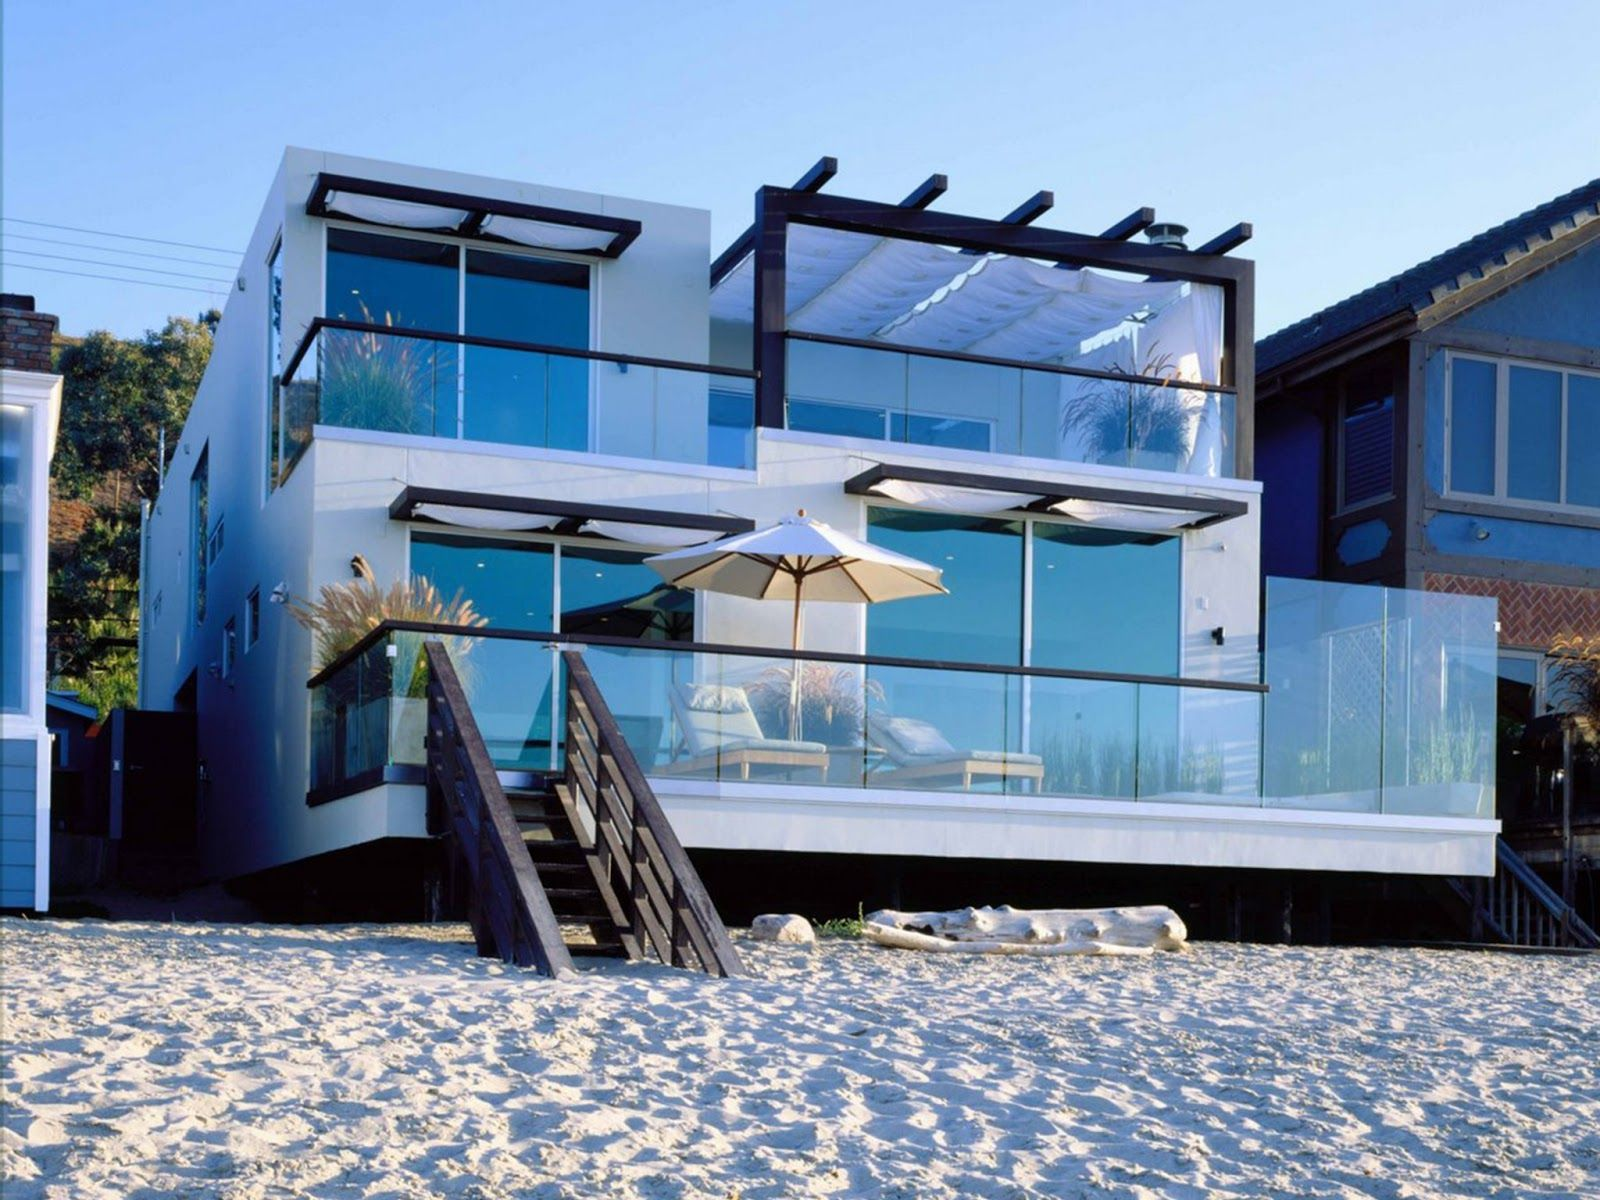 Pictures of houses on the beach - Outdoor Extravagant Landscape Ideas For Best Beach Houses Beach House With Sand Landscape Idea